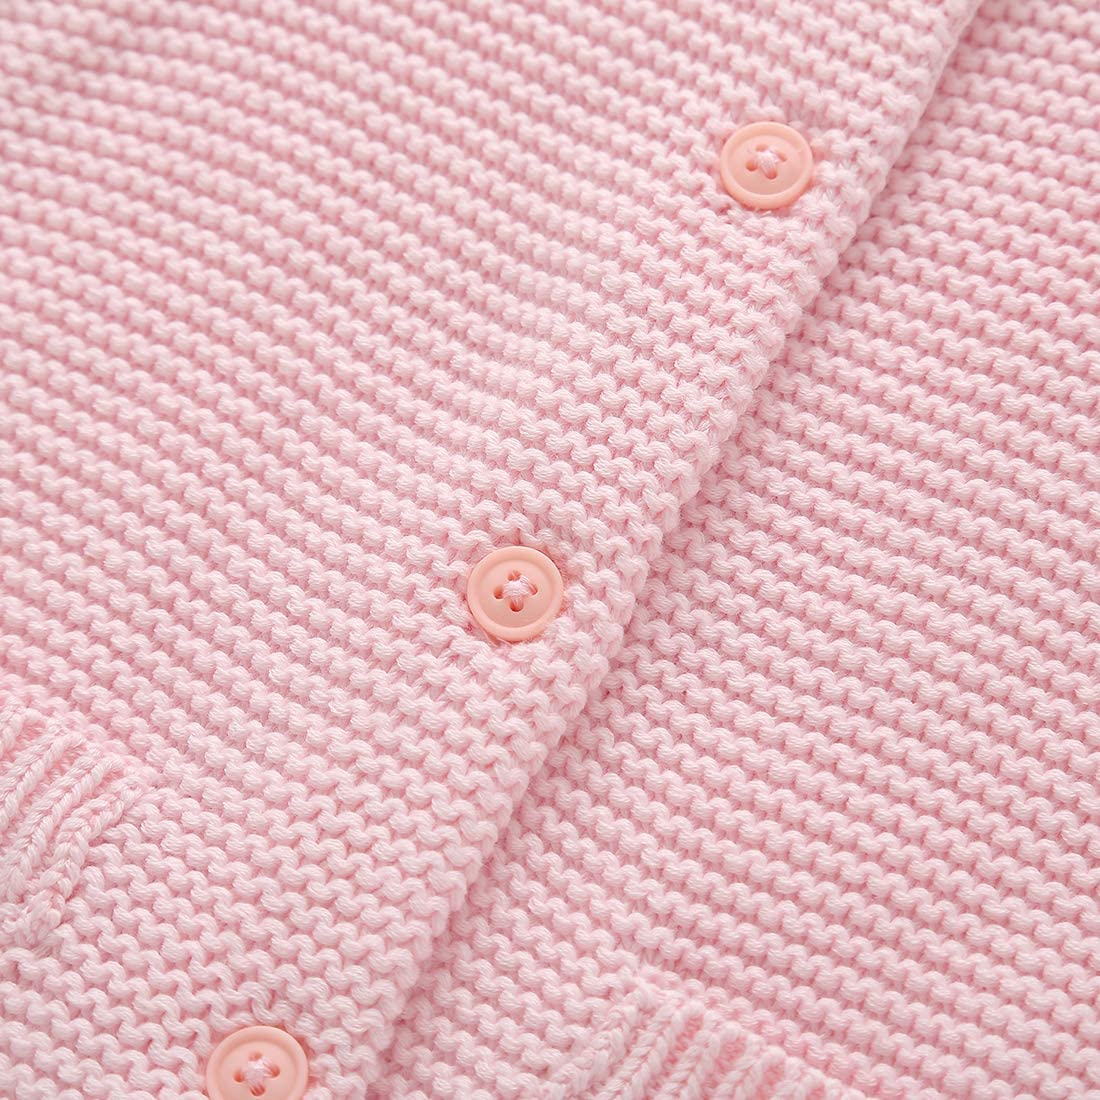 BKN Baby Girls Boys Cardigan Sweater with Decorative Pocket Button up 100/% Cotton Gift for Toddlers